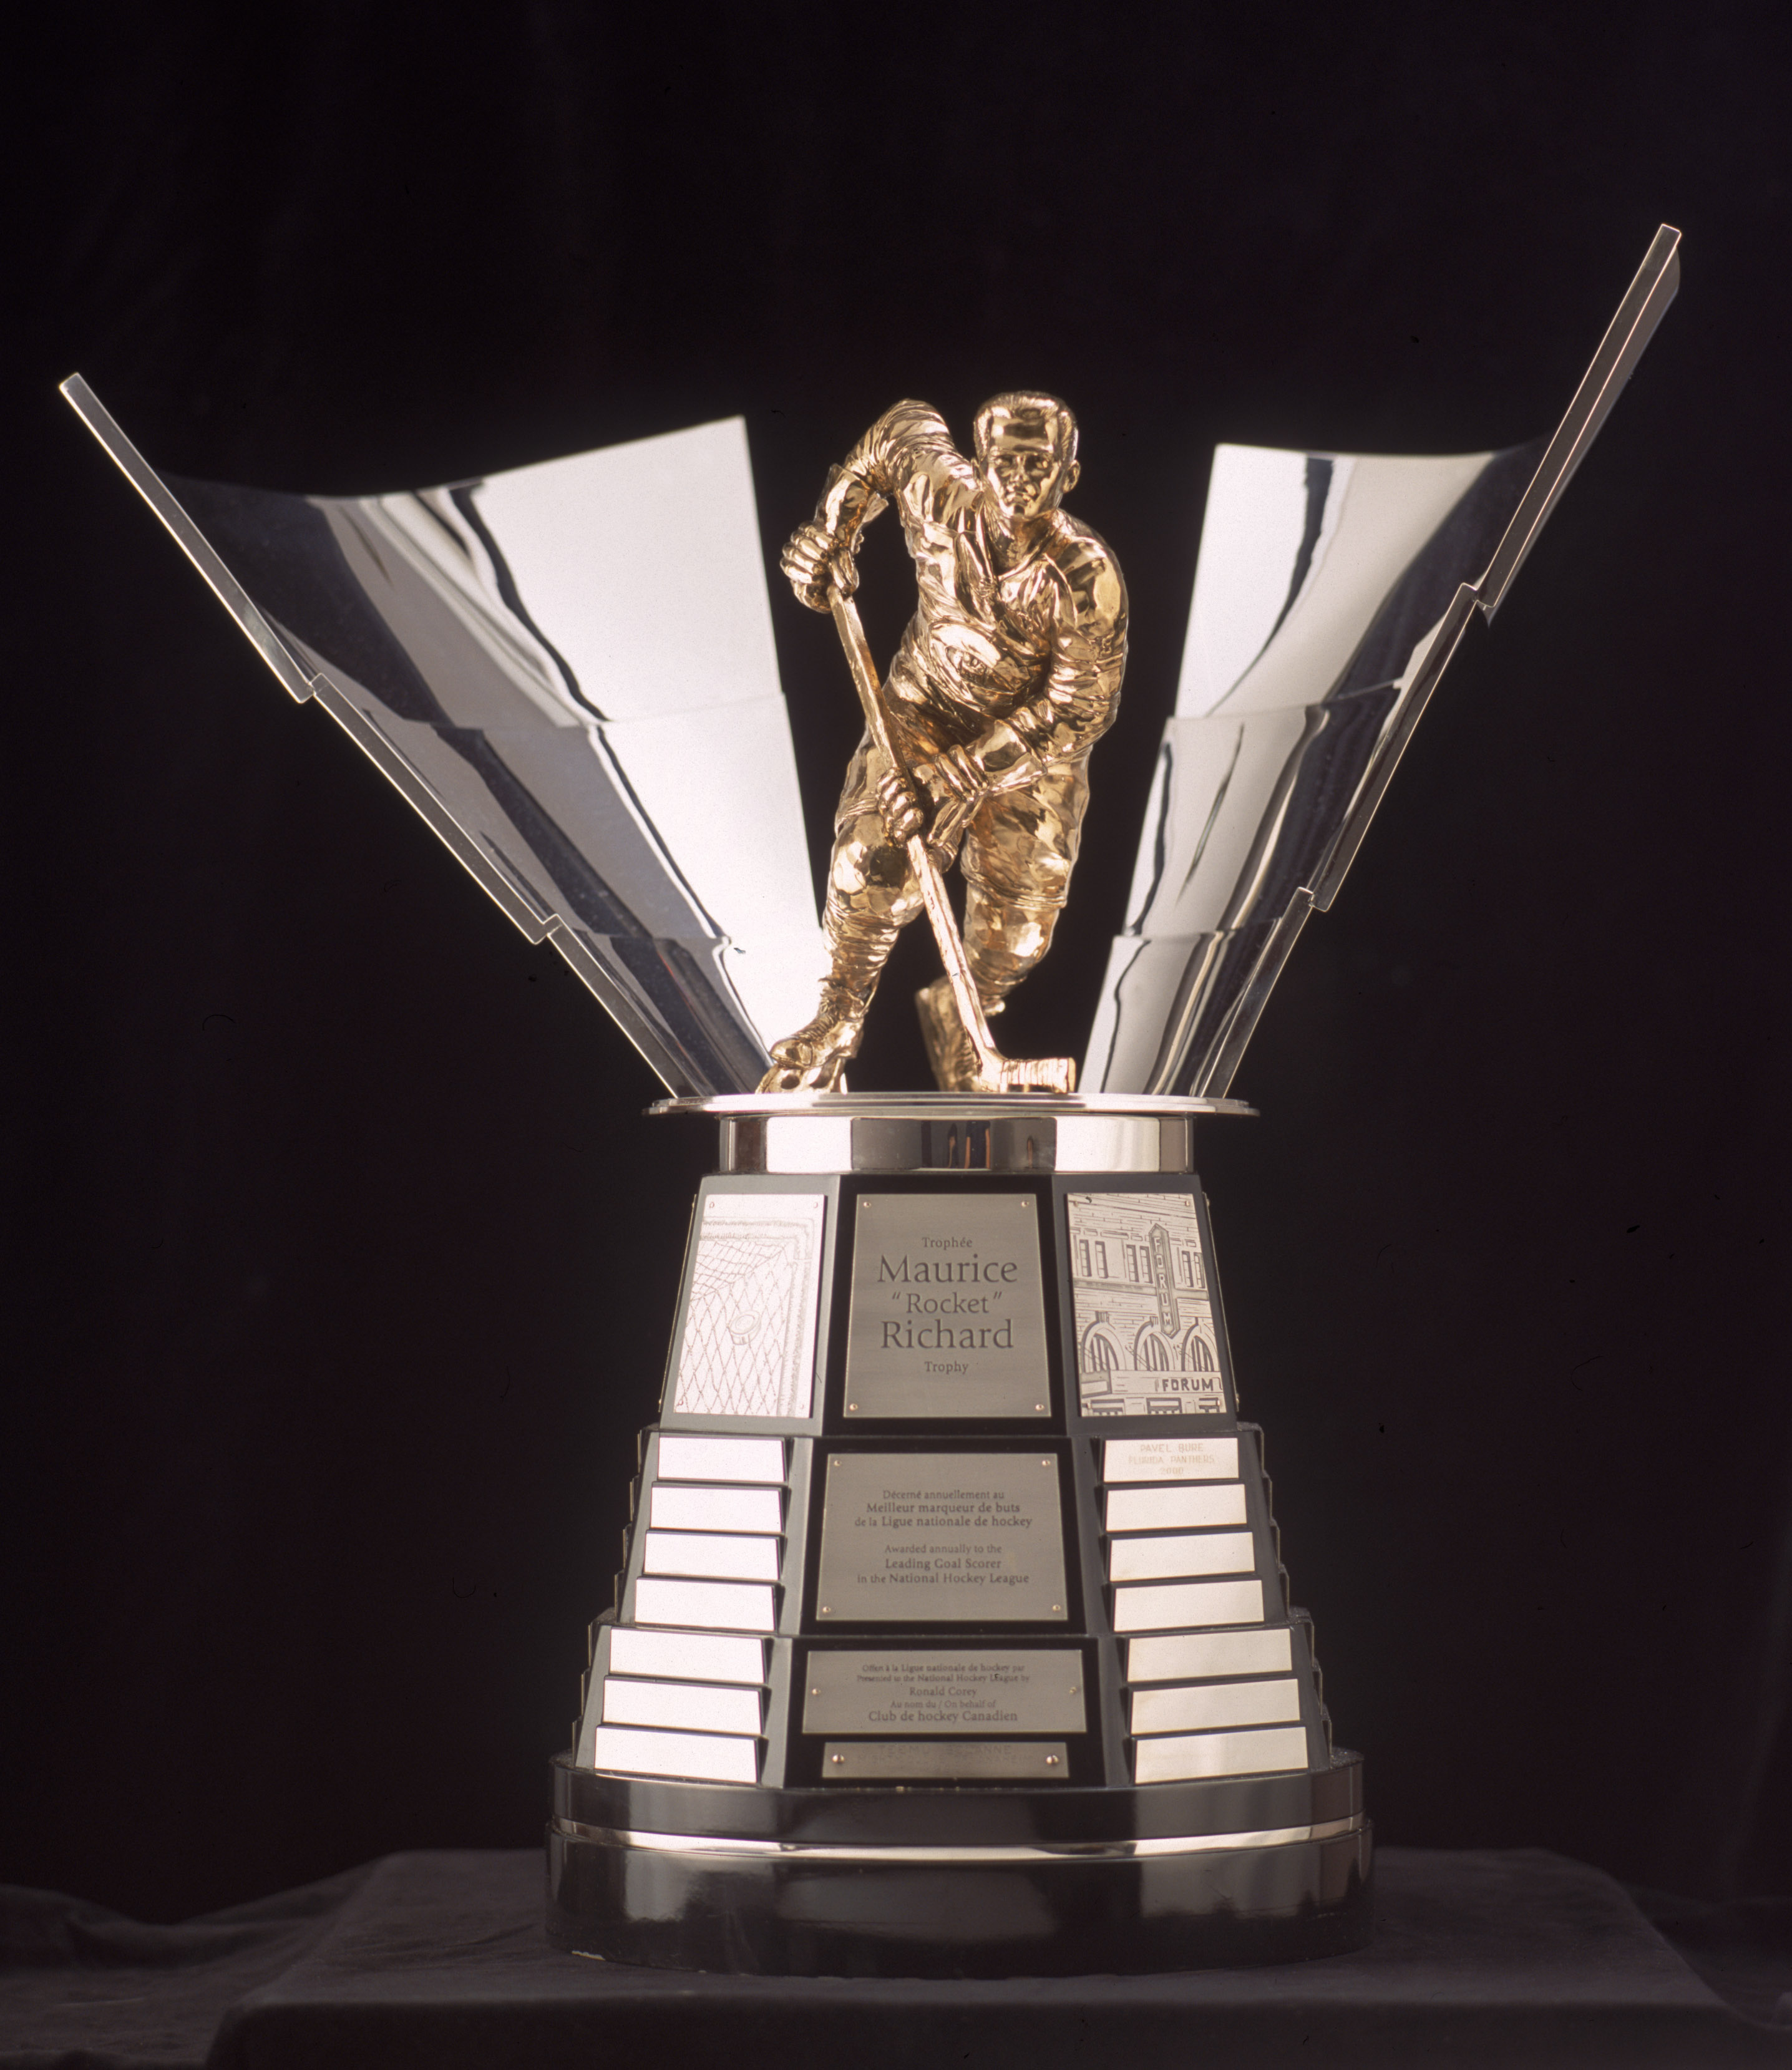 TORONTO - JANUARY 1:  The Maurice Richard Trophy is presented yearly to the Top Goal Scorer in the National Hockey League as pictured on January 01, 2001.  (Photo by Silva Pecota /Getty Images/NHLI)